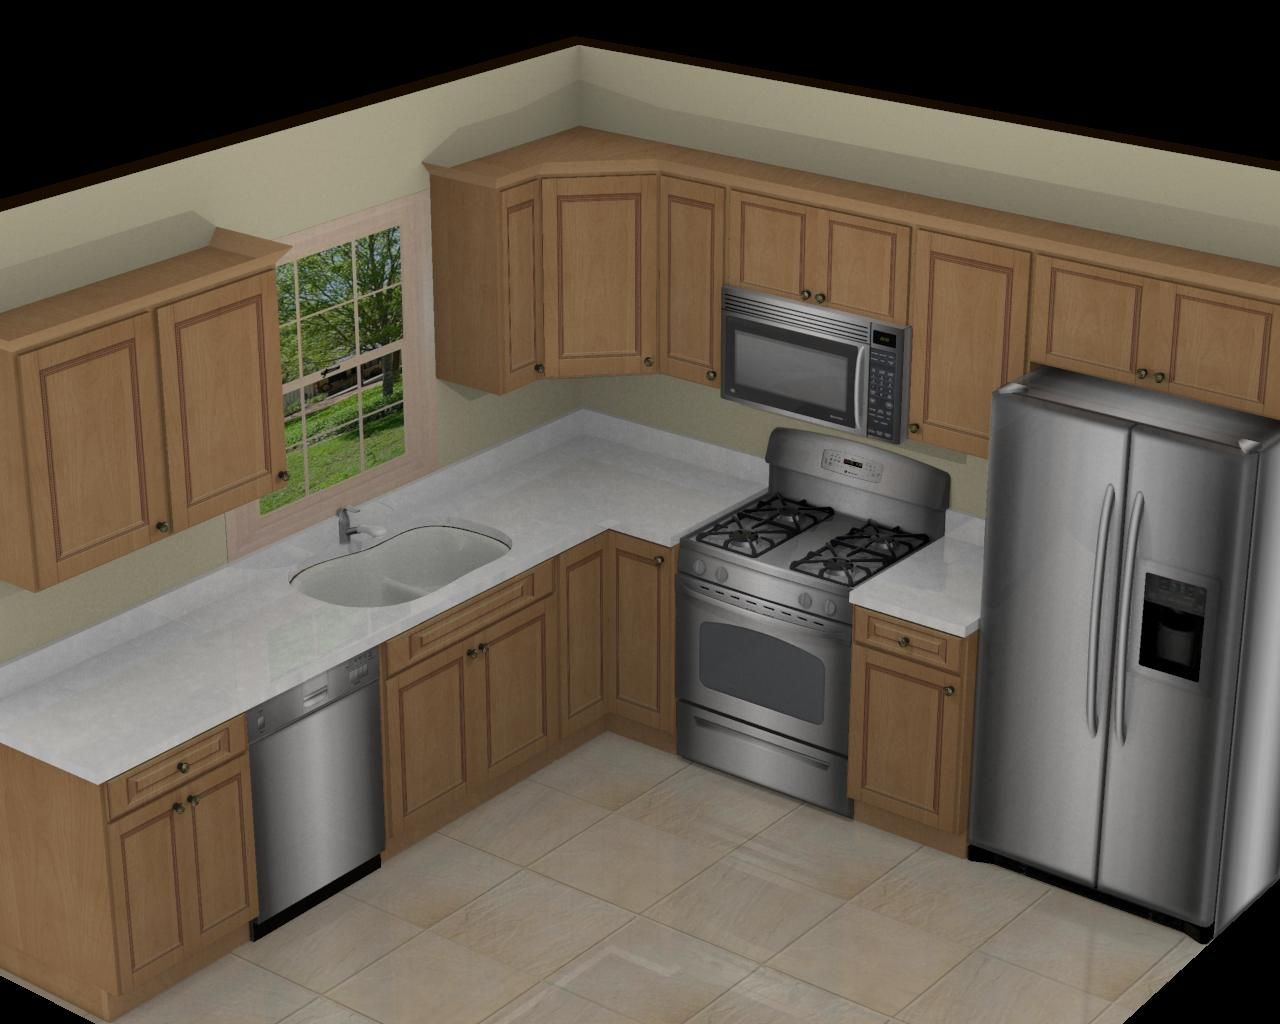 10x10 kitchen on pinterest l shaped kitchen kitchen for 10x10 kitchen cabinets